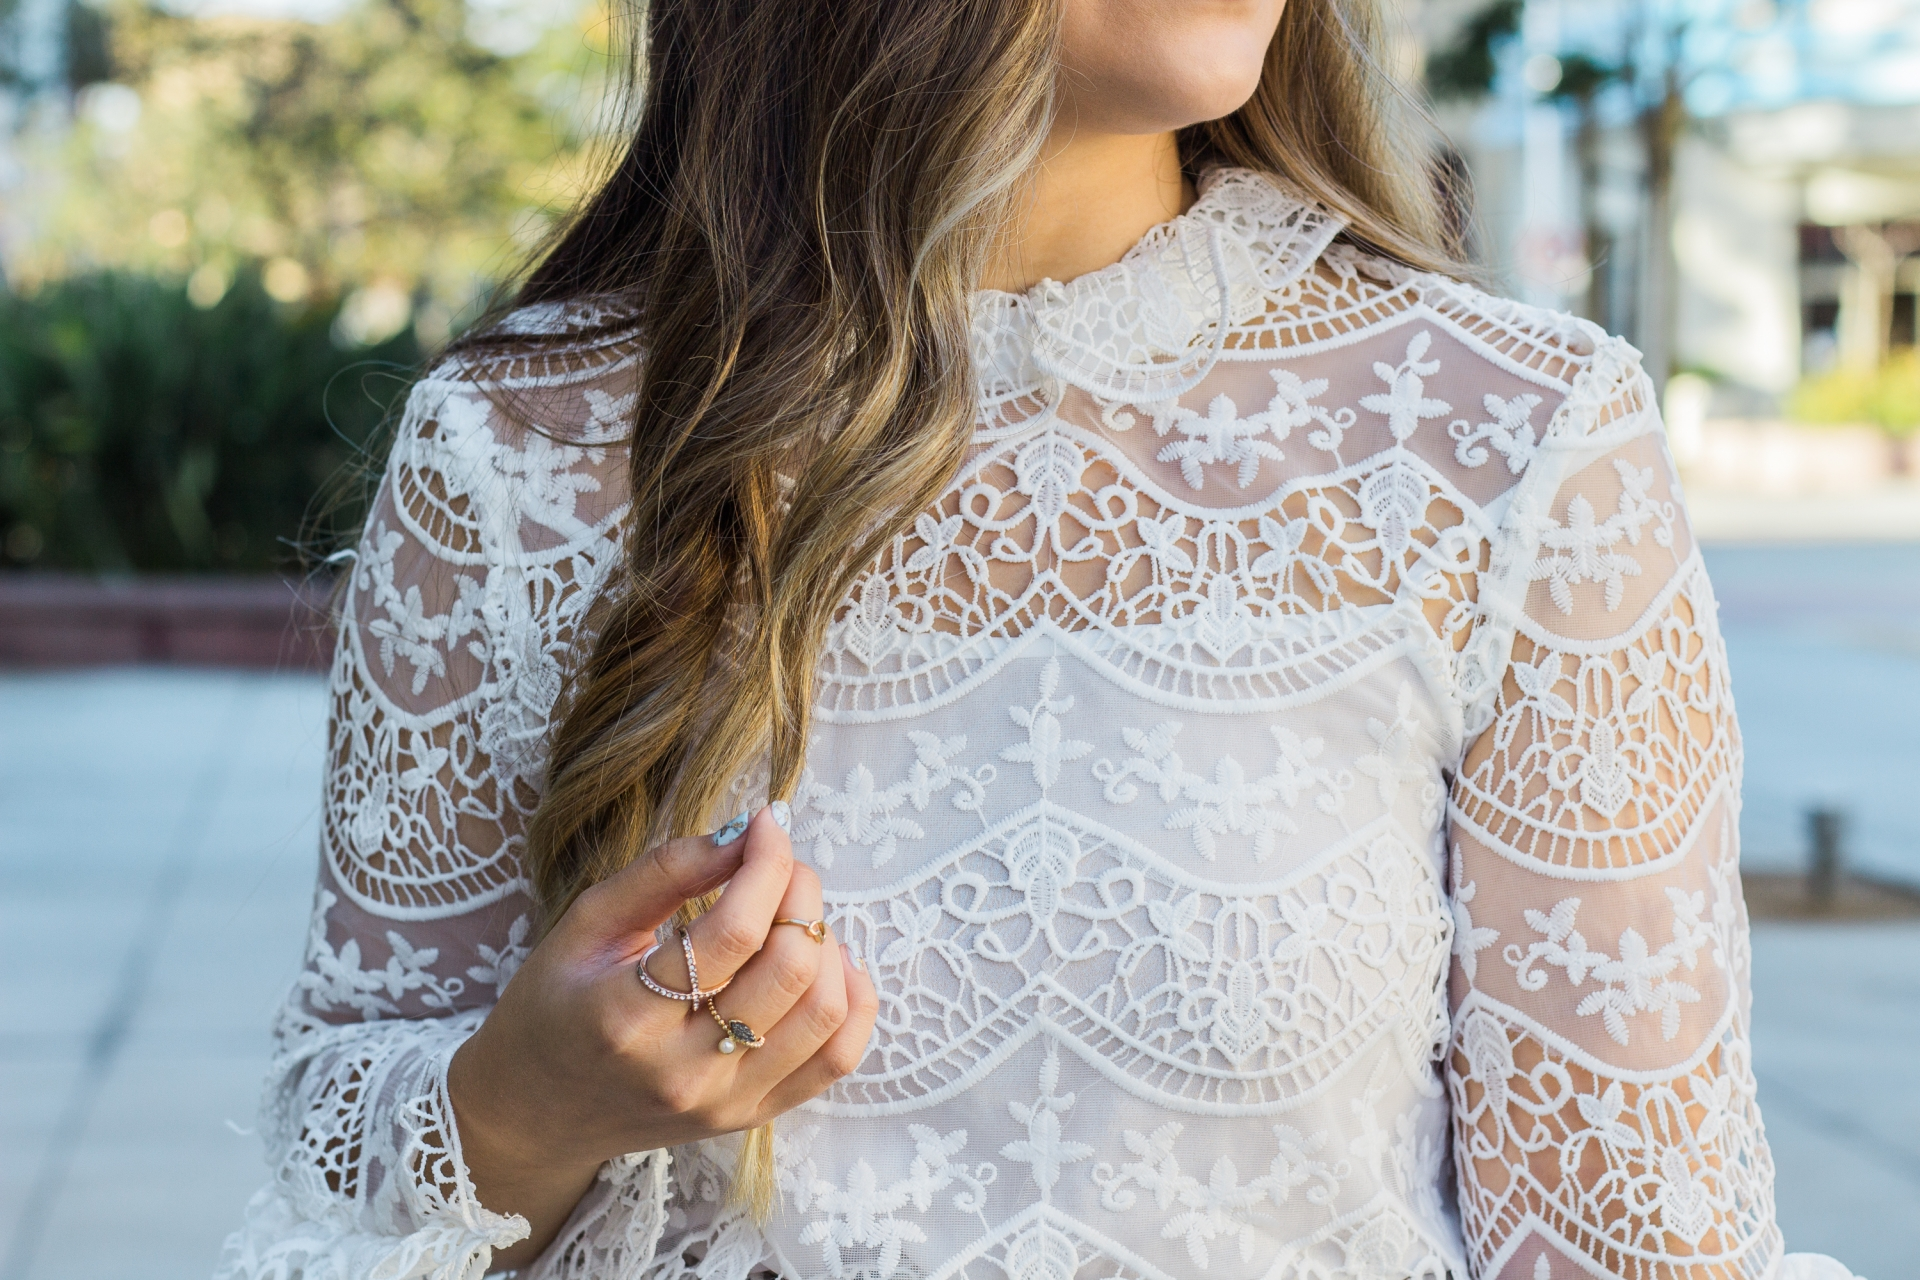 Revolve Endless Love Ribbon Ties Crochet Lace Top Embroidered Crochet Lace Overlay Top with Back Tie Closures Ruffle Collar Trim And Extravagant Bell Sleeves